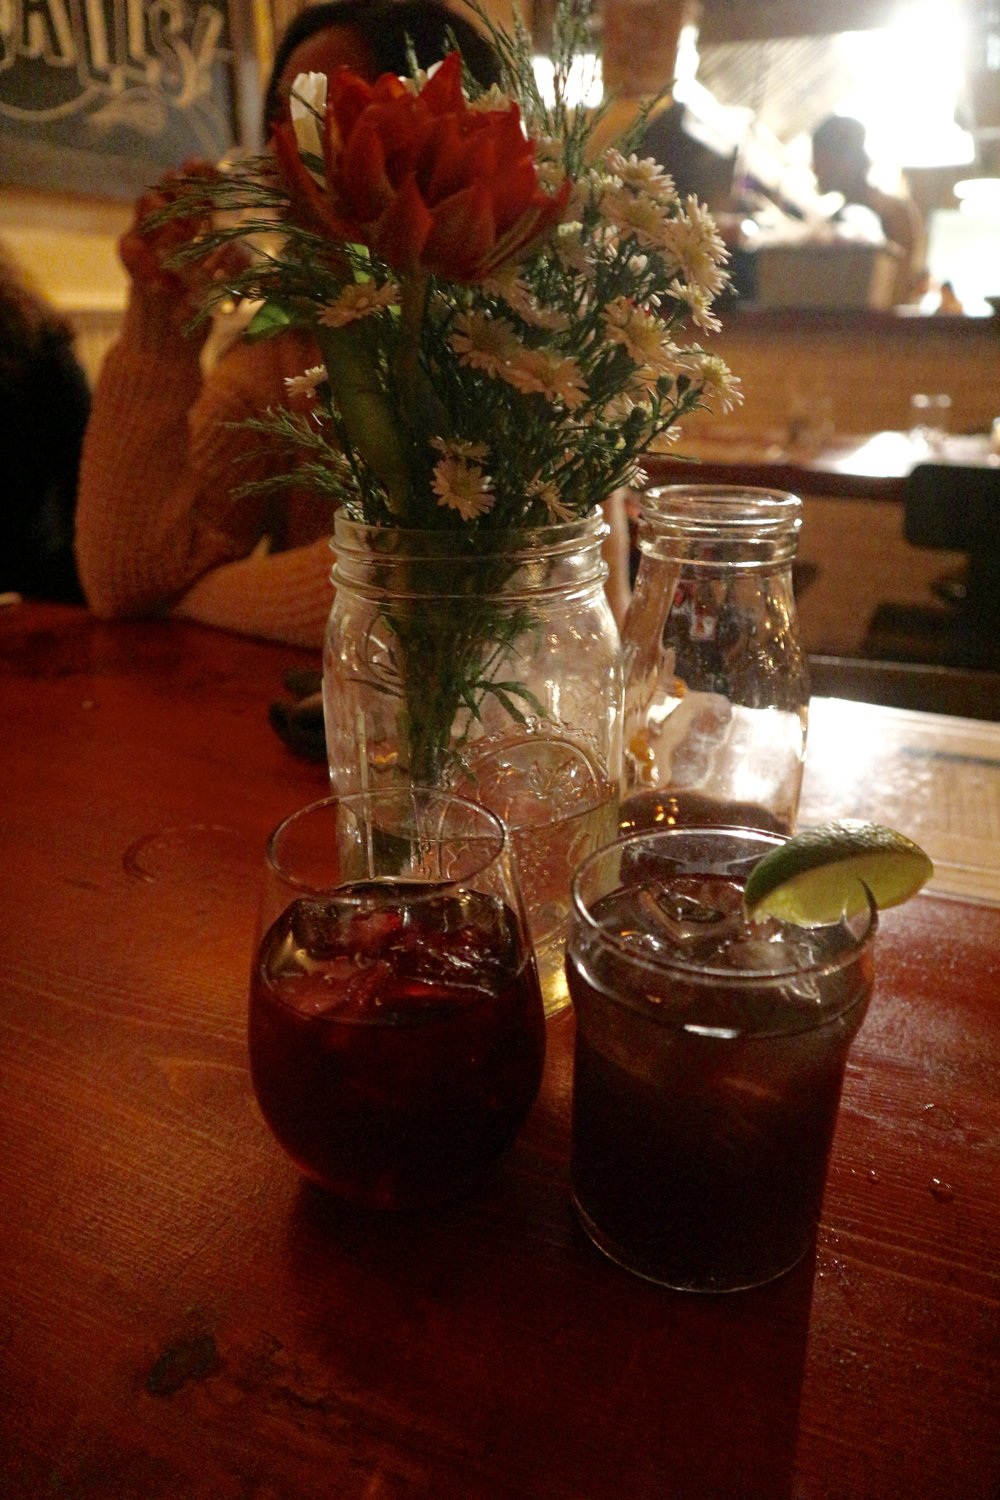 Fools-Aid & Sangria - The Meatball Shop